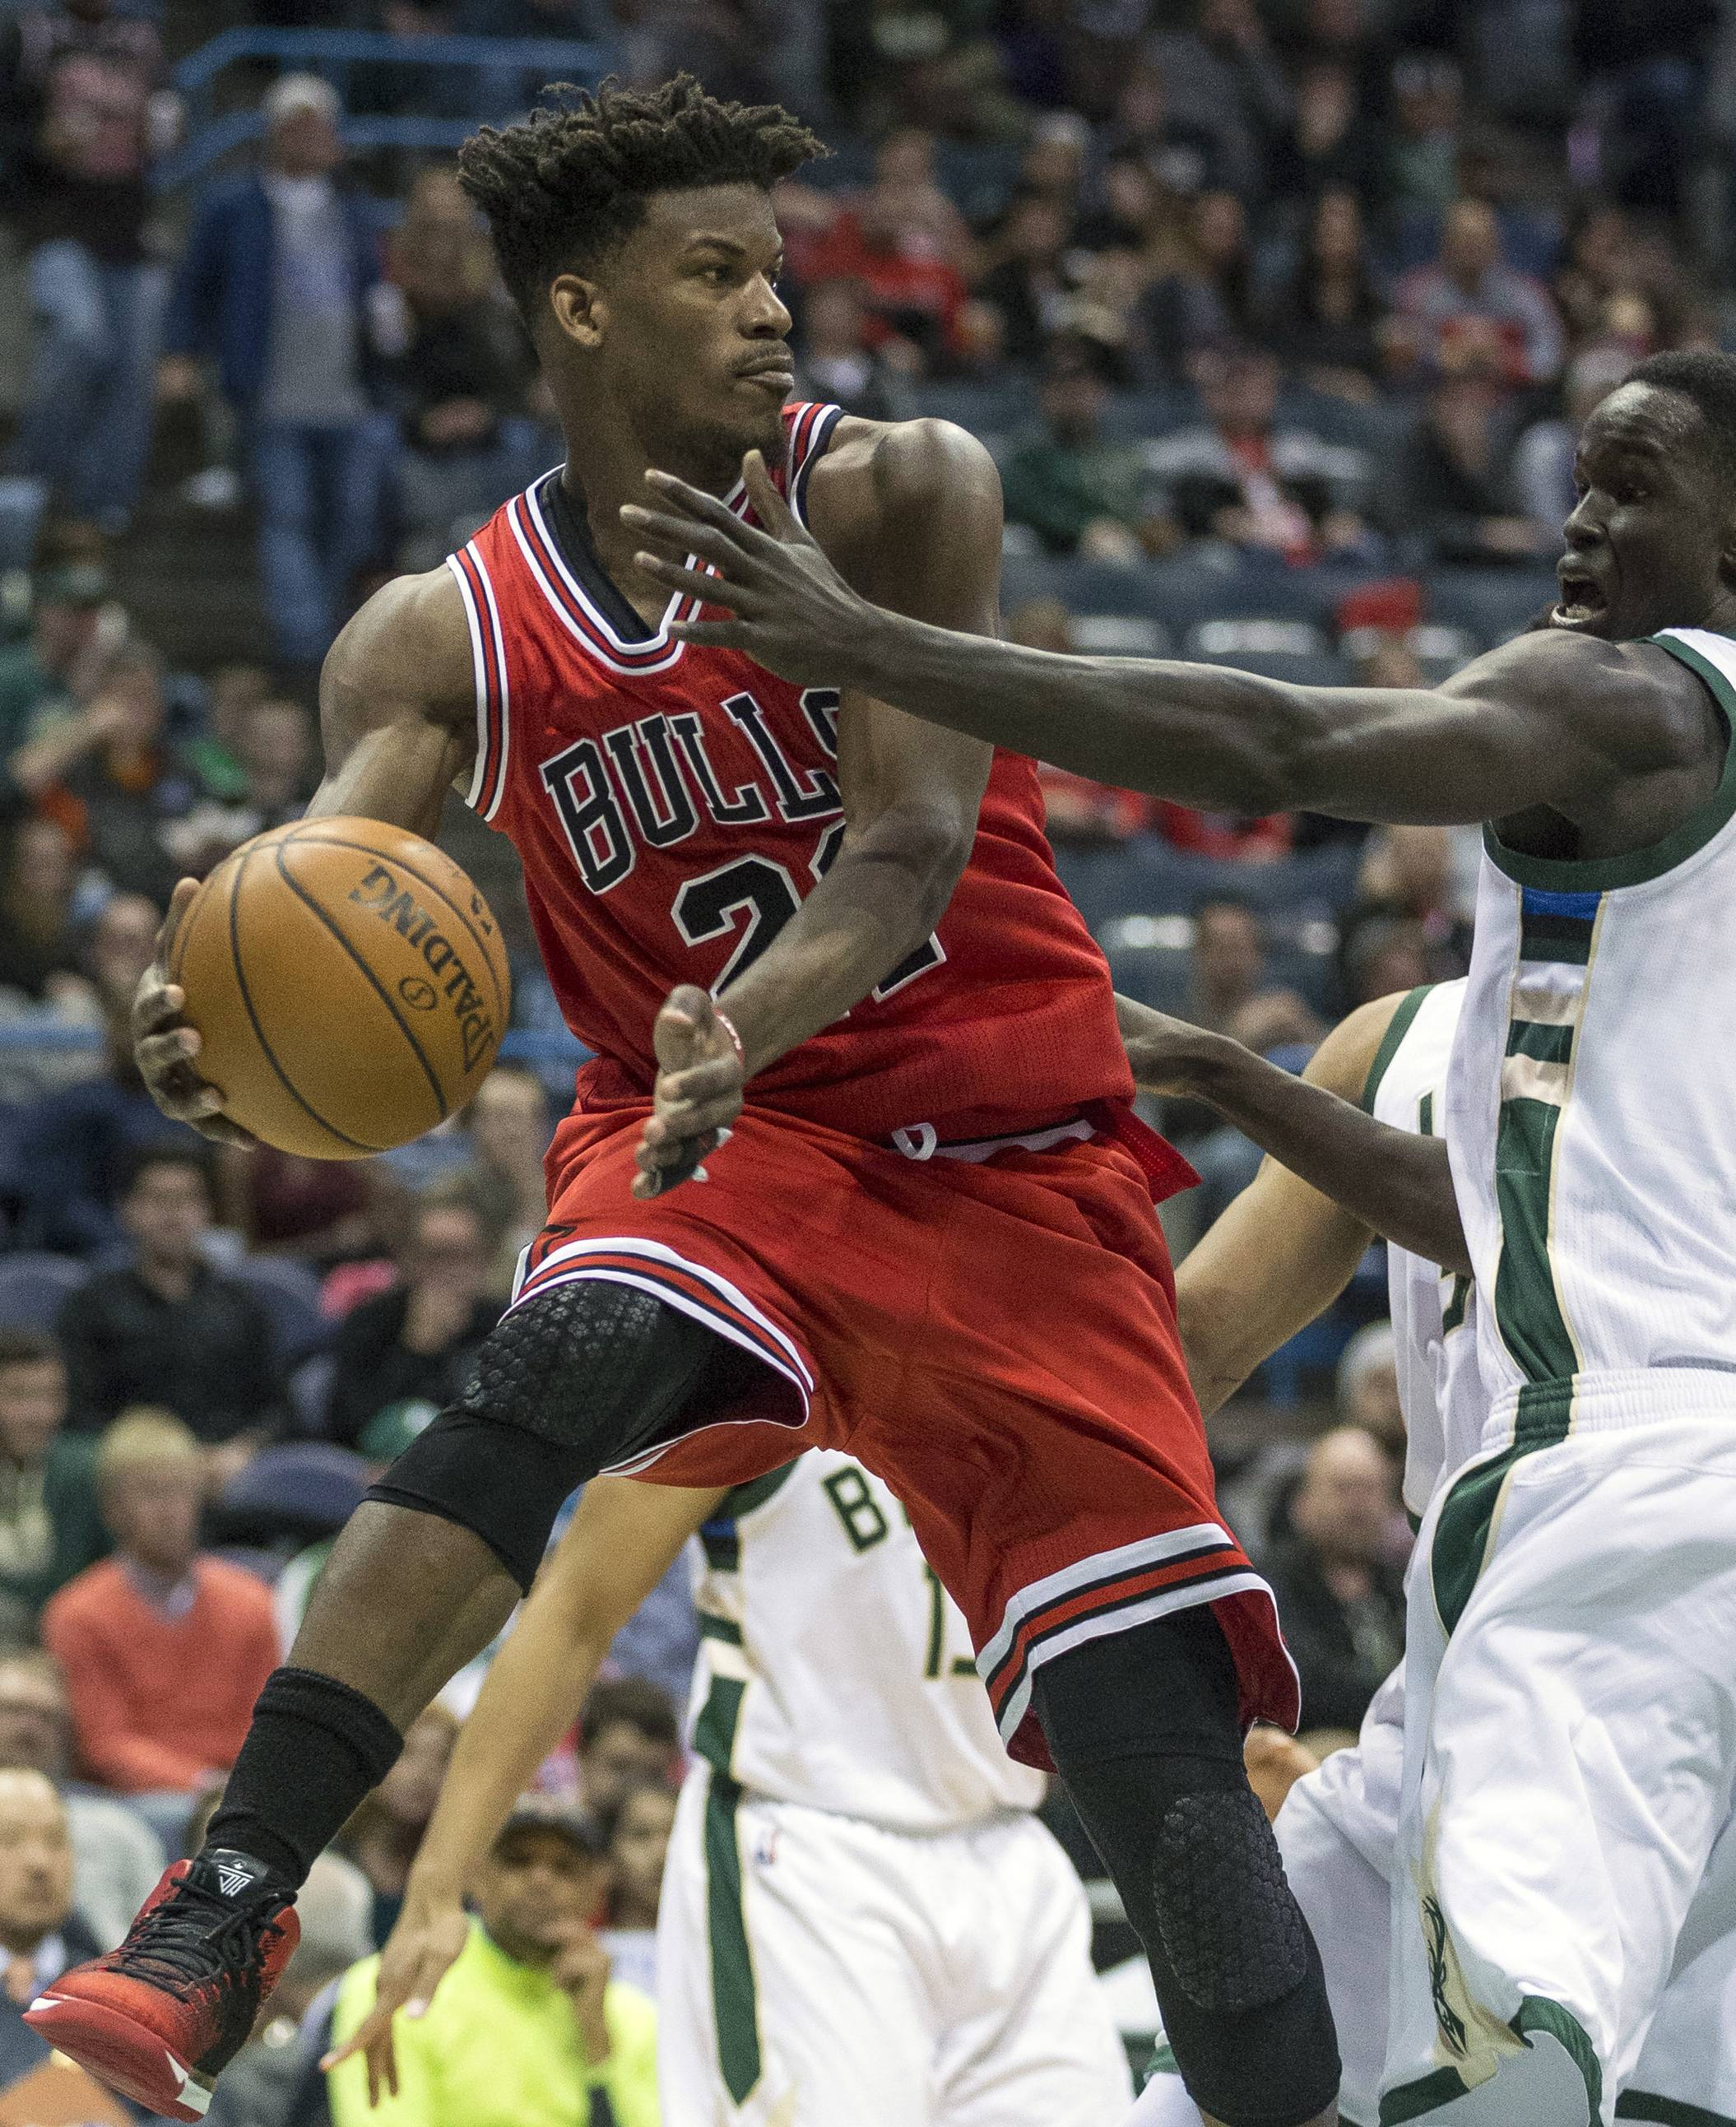 Chicago Bulls' Jimmy Butler looks to pass the ball as Milwaukee Bucks' Thon Maker defends during the second half of an NBA basketball game Sunday, March 26, 2017, in Milwaukee. (AP Photo/Tom Lynn)